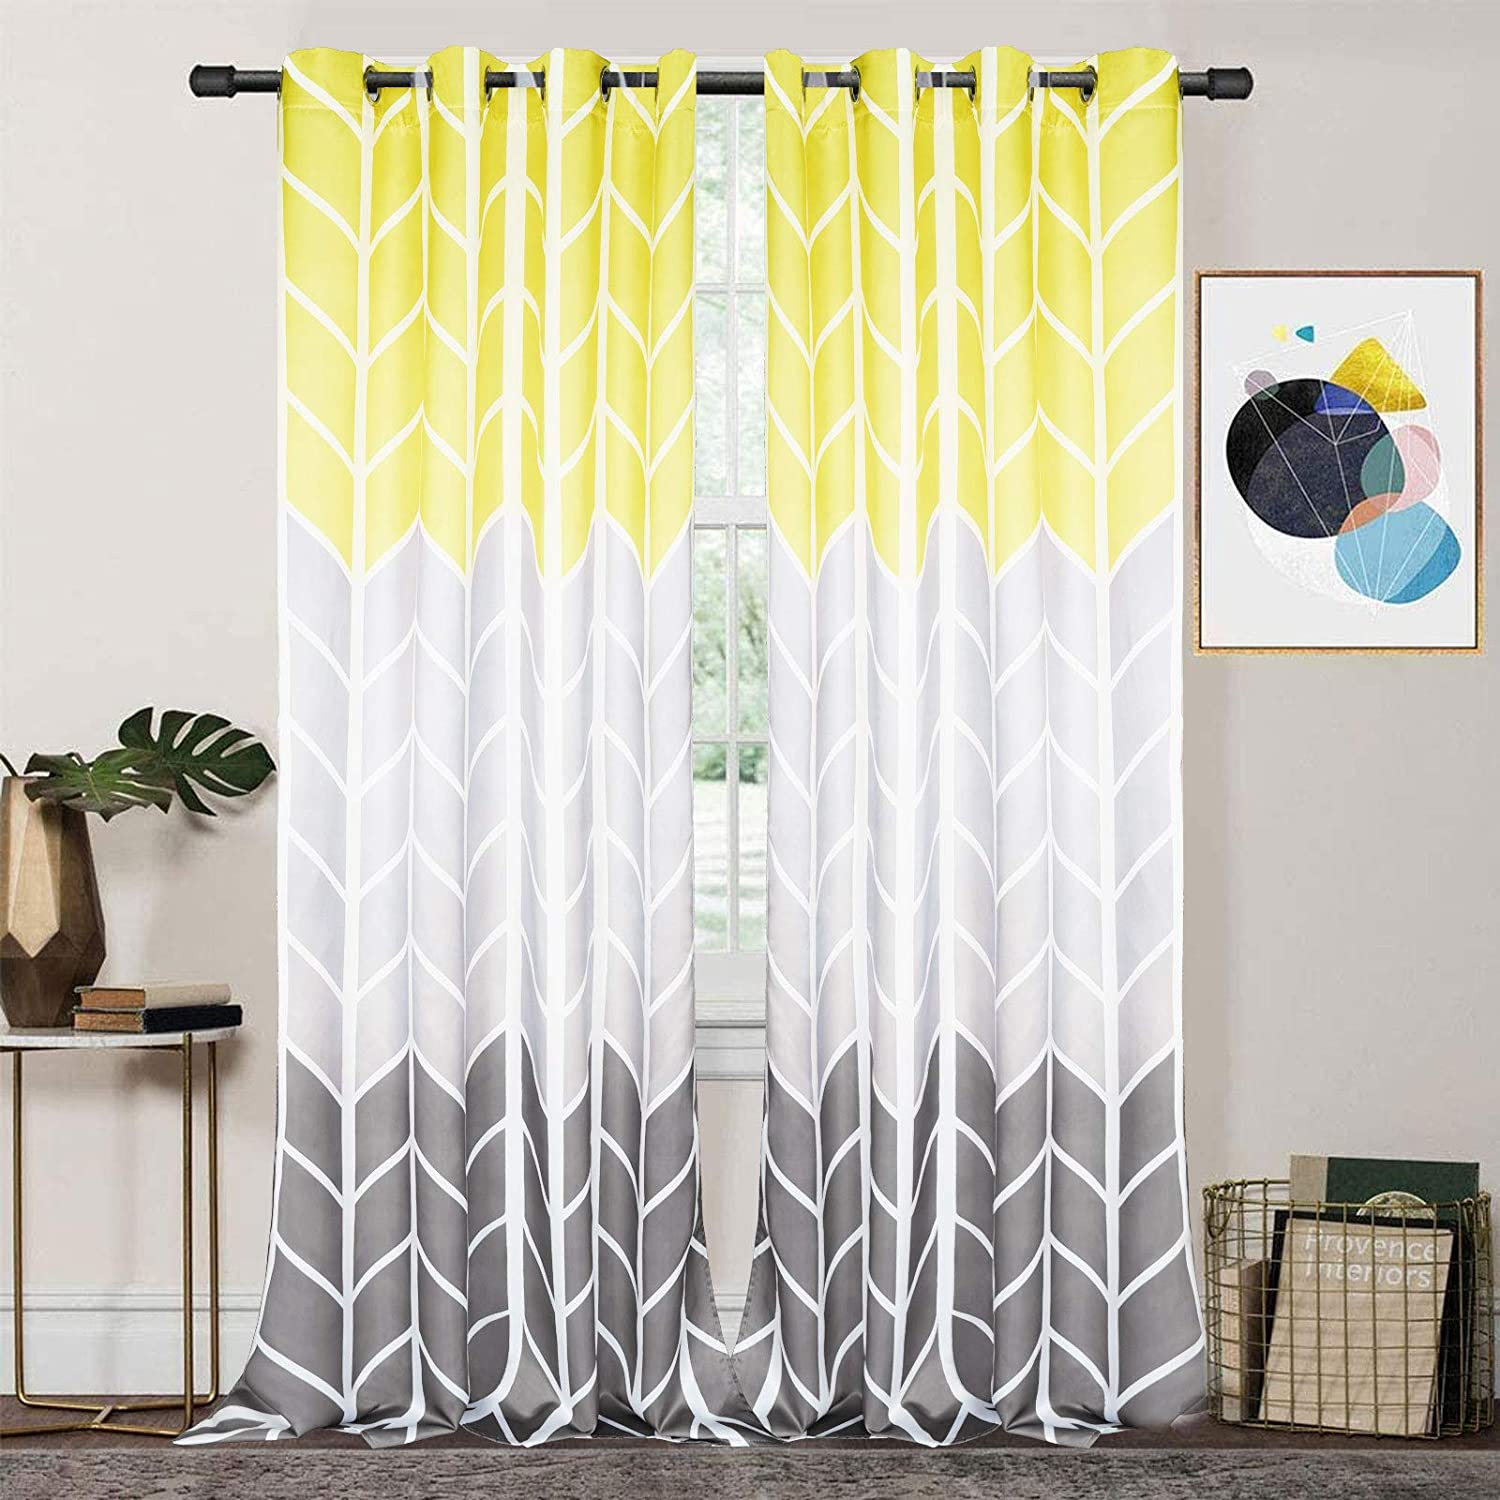 ASPMIZ Grey Yellow Color Block Window Curtains, Gray Gradient Curtain Panels, Geometric Chevron Room Darkening Curtain Drapes with Grommets for Bedroom Living Room, Set of 2 Panels, 52 x 84 Inch